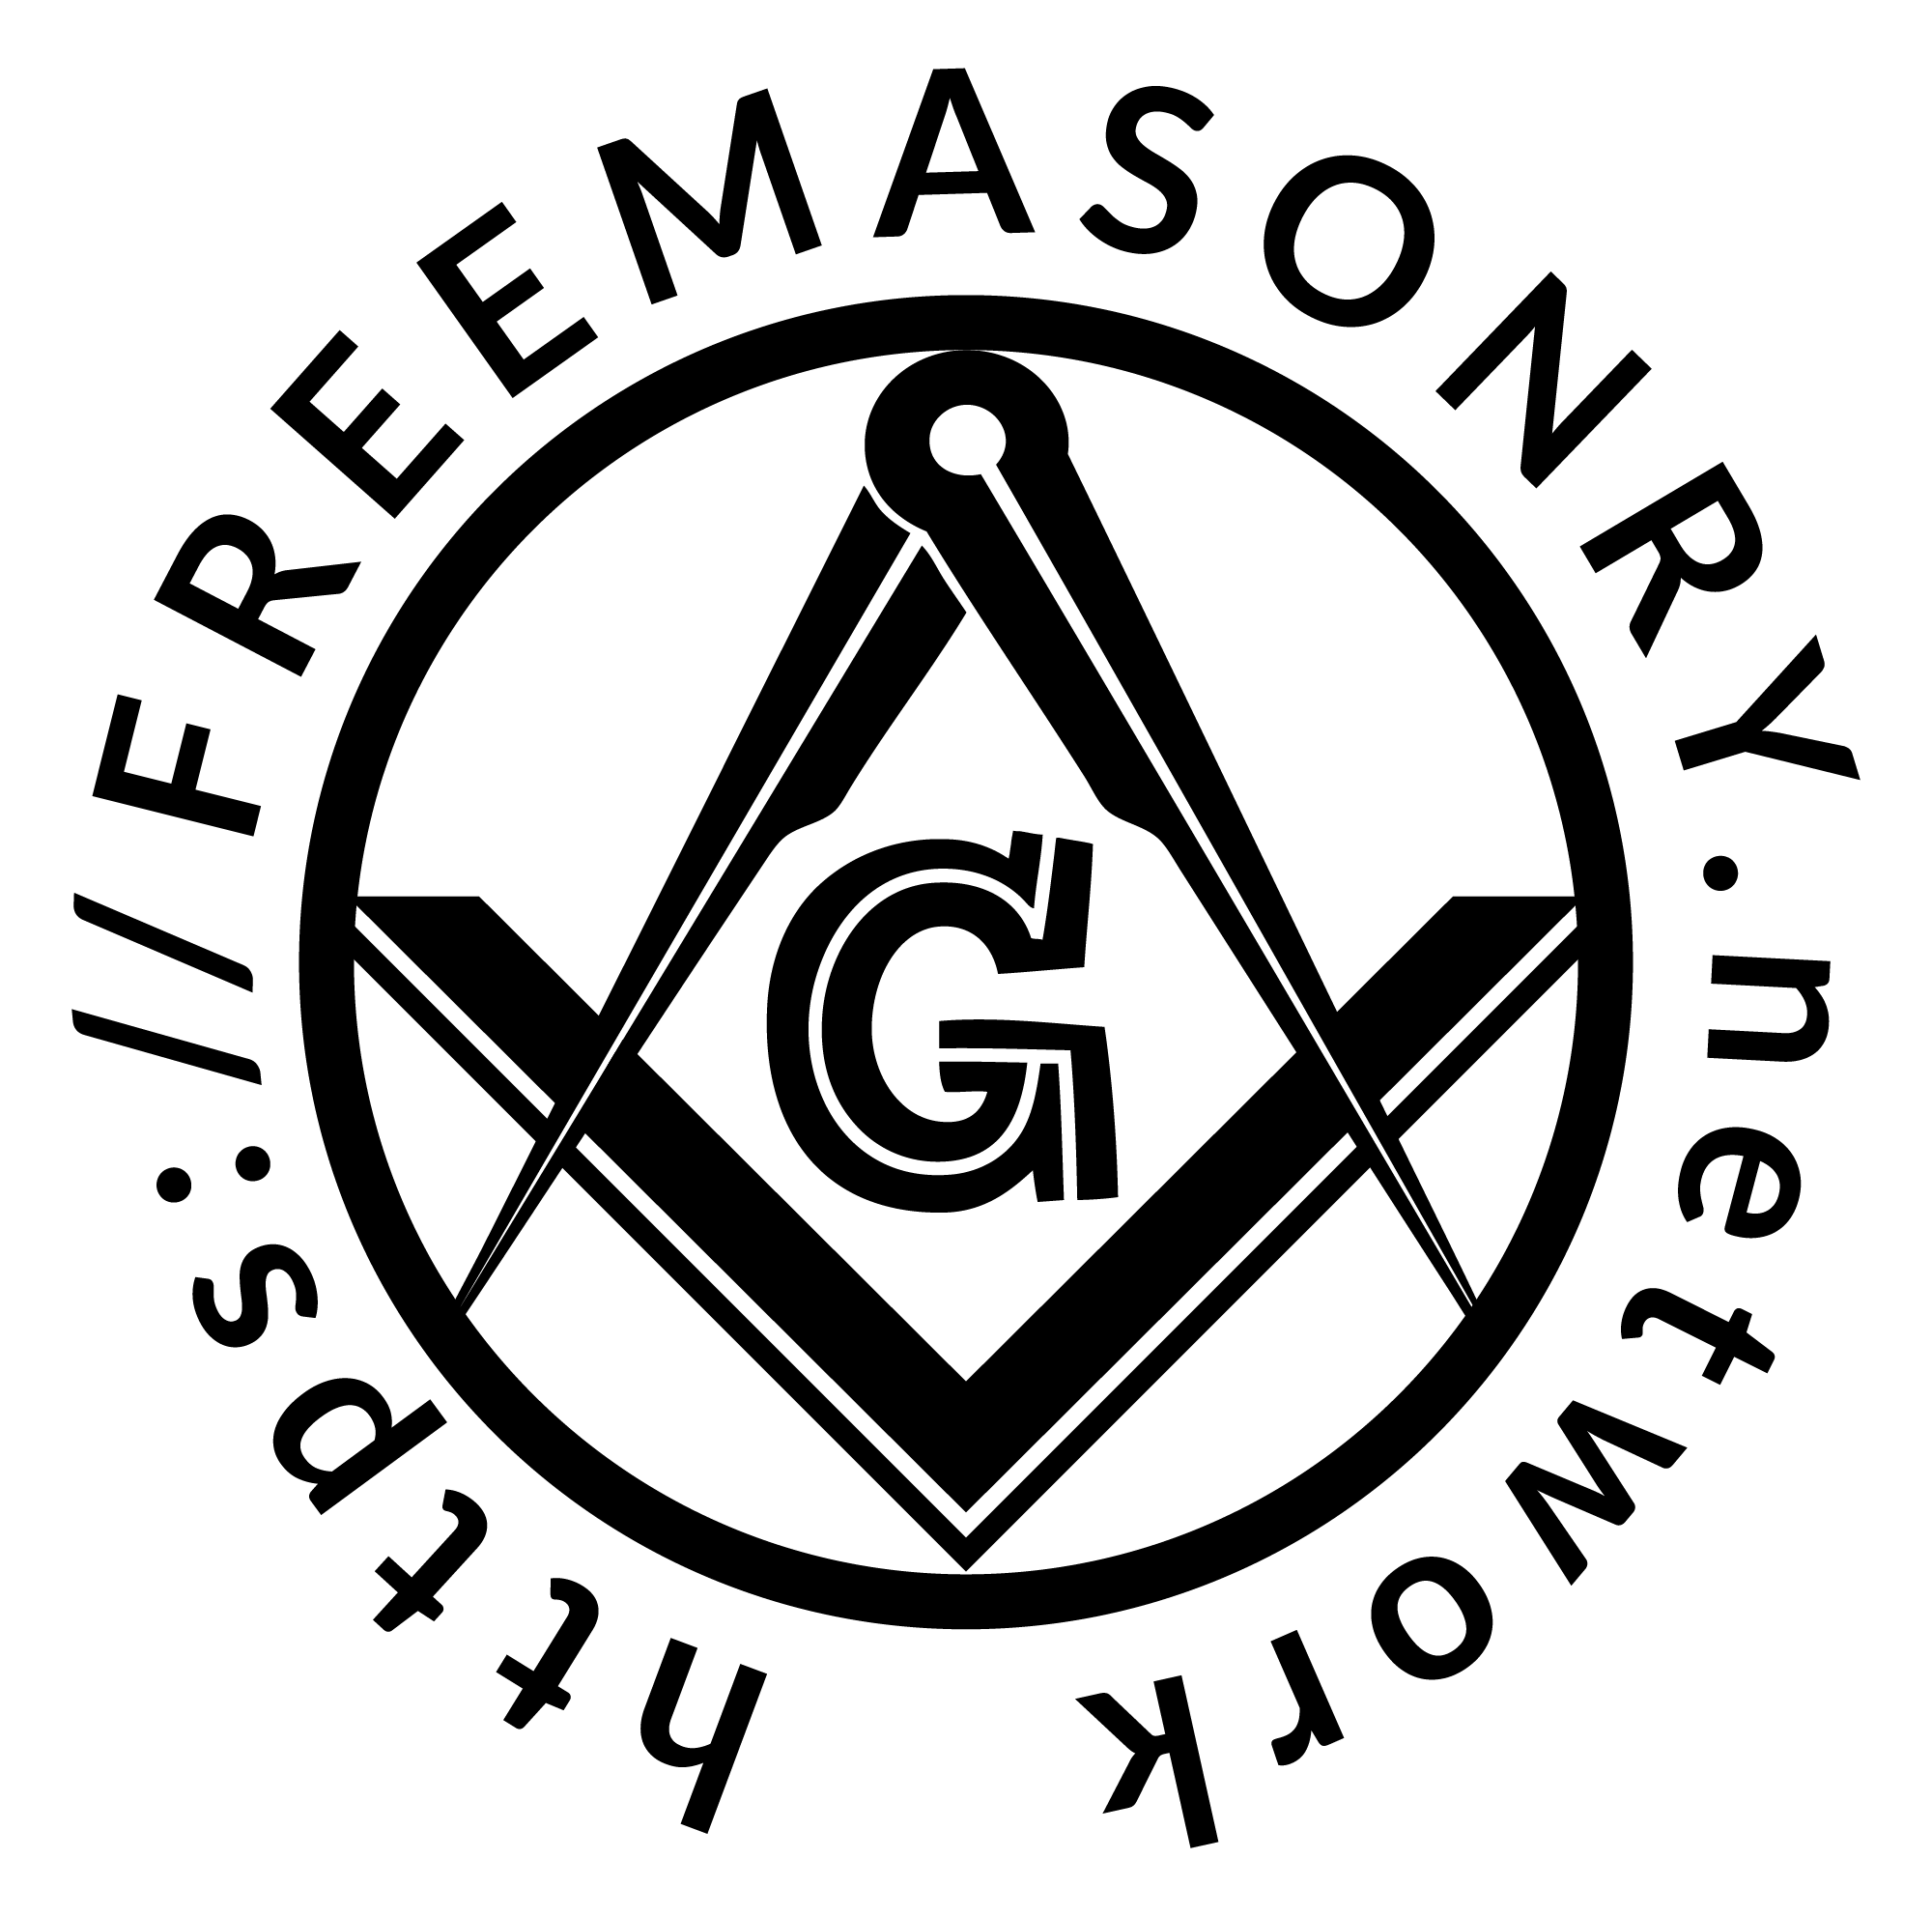 GEOMETRY - Mackey's Encyclopedia of Freemasonry